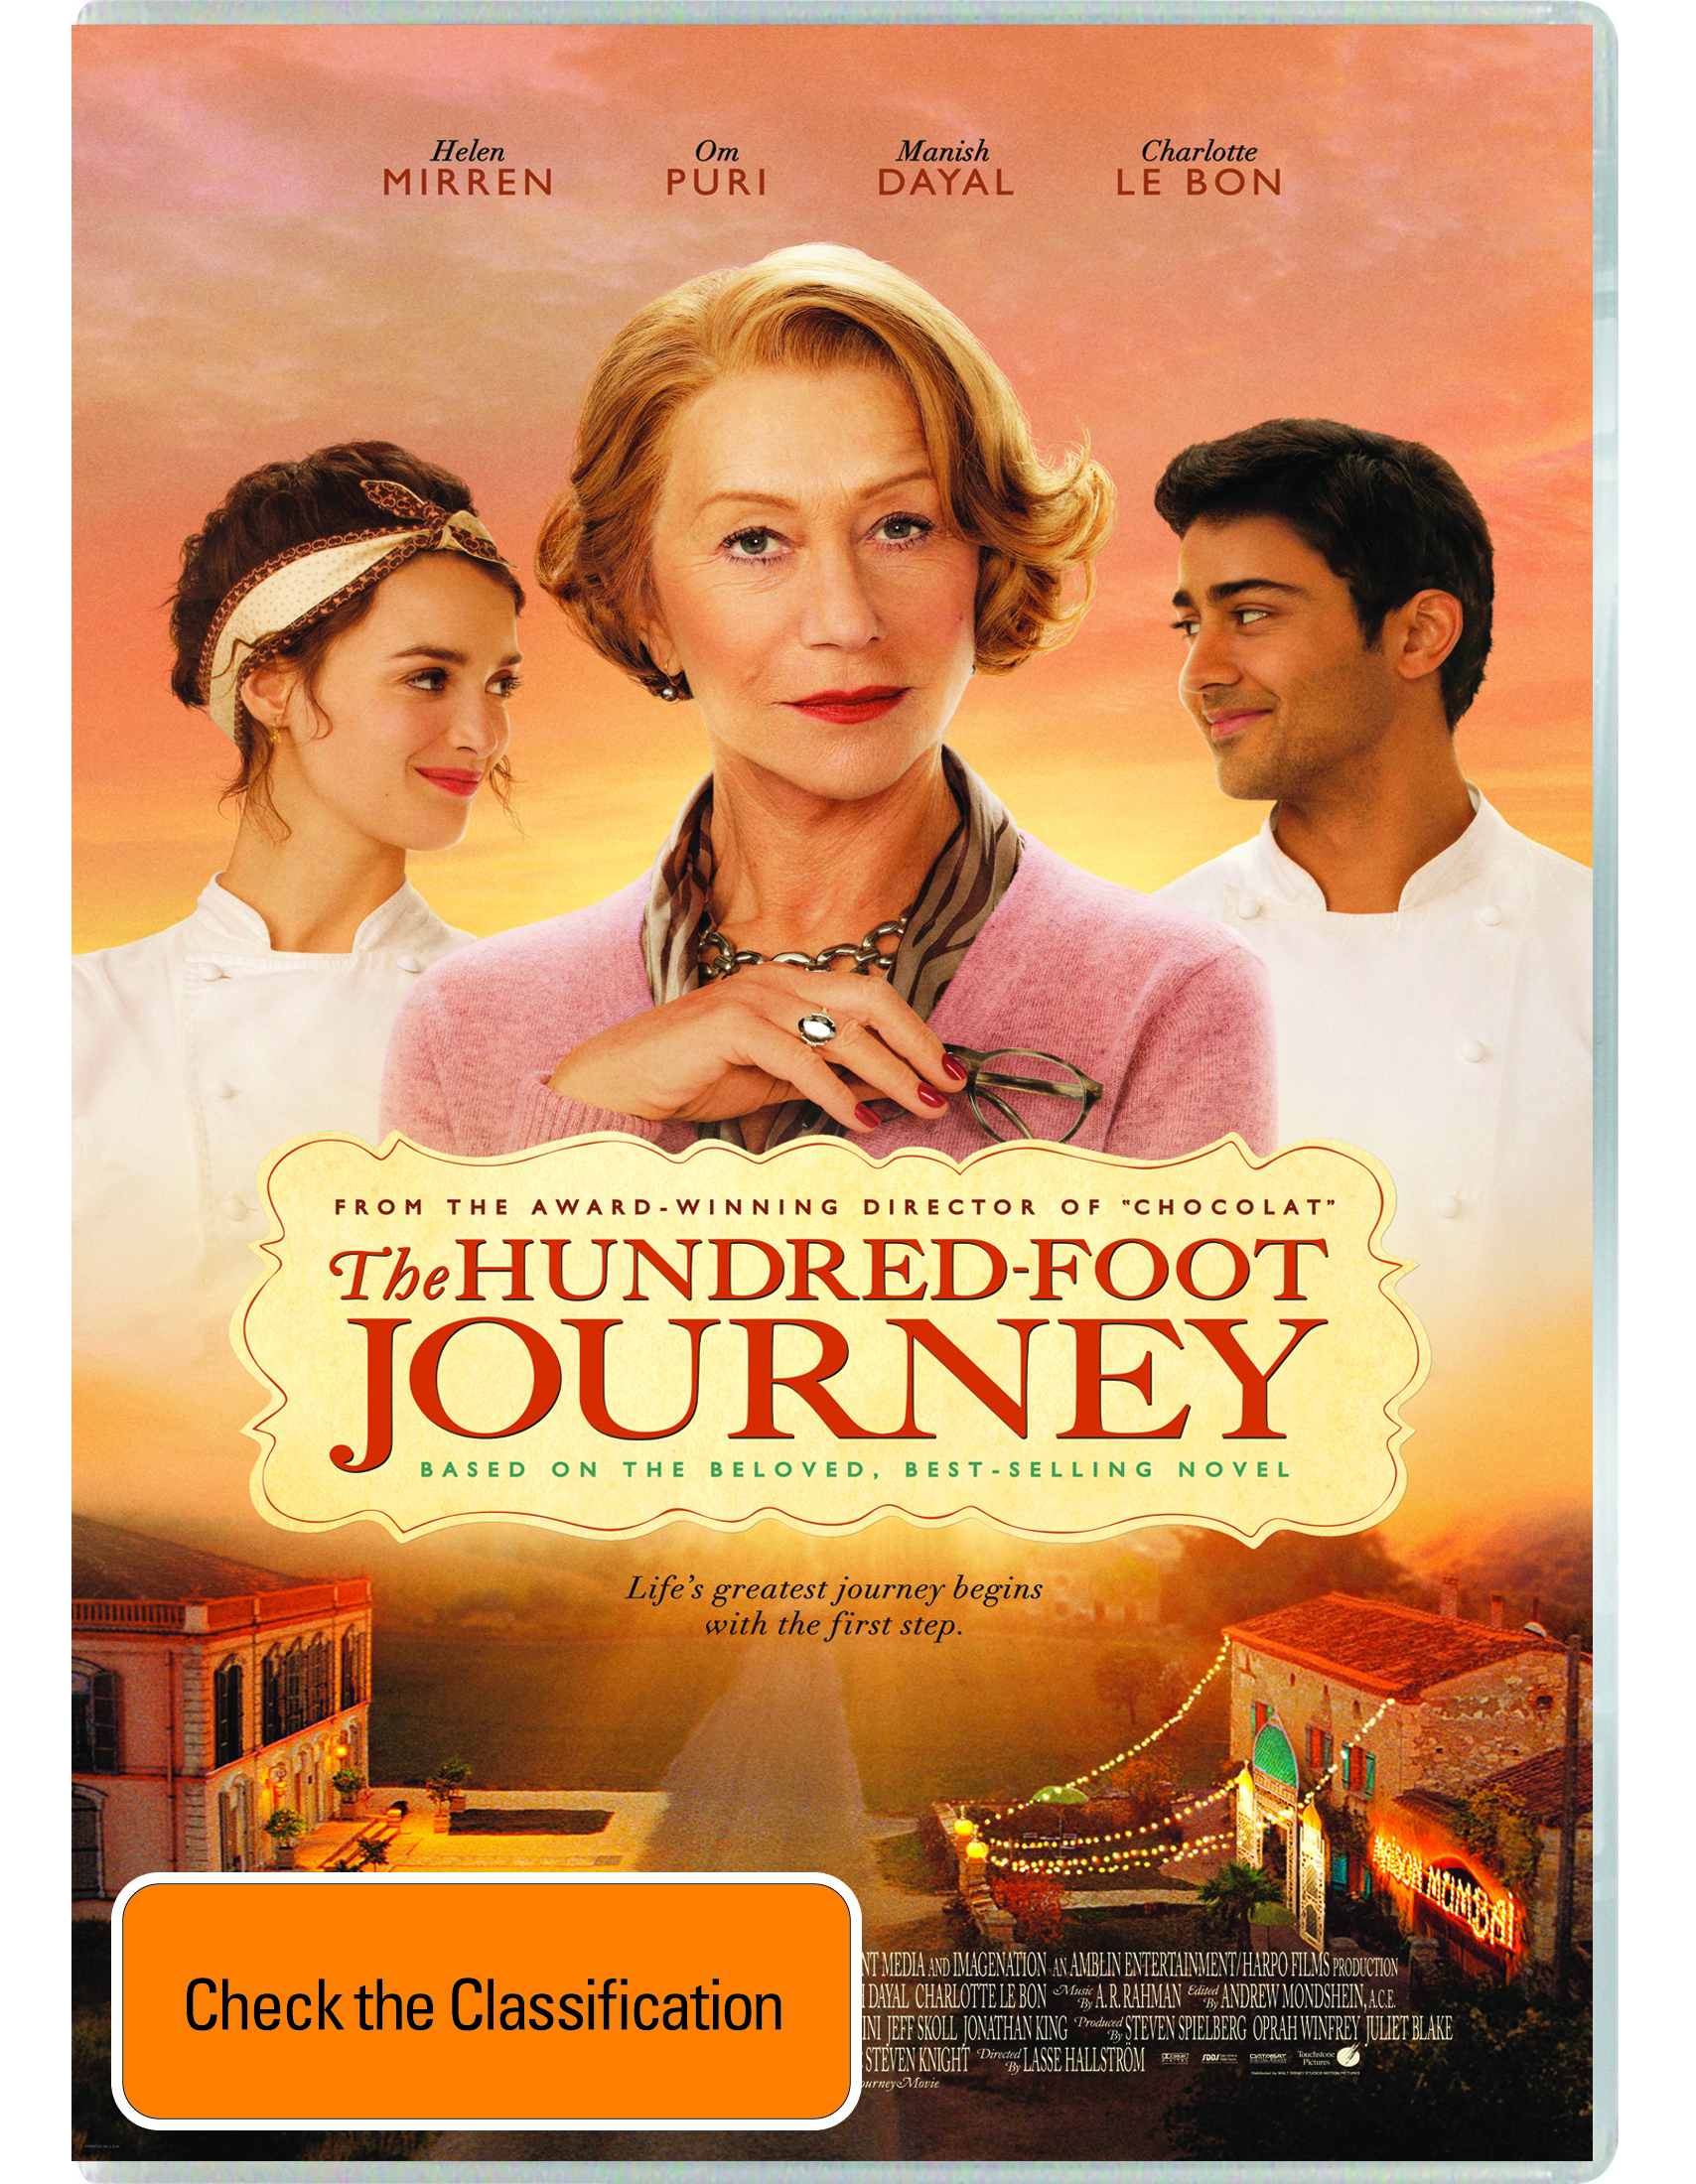 Win The Hundred Foot Journey on DVD - diversions